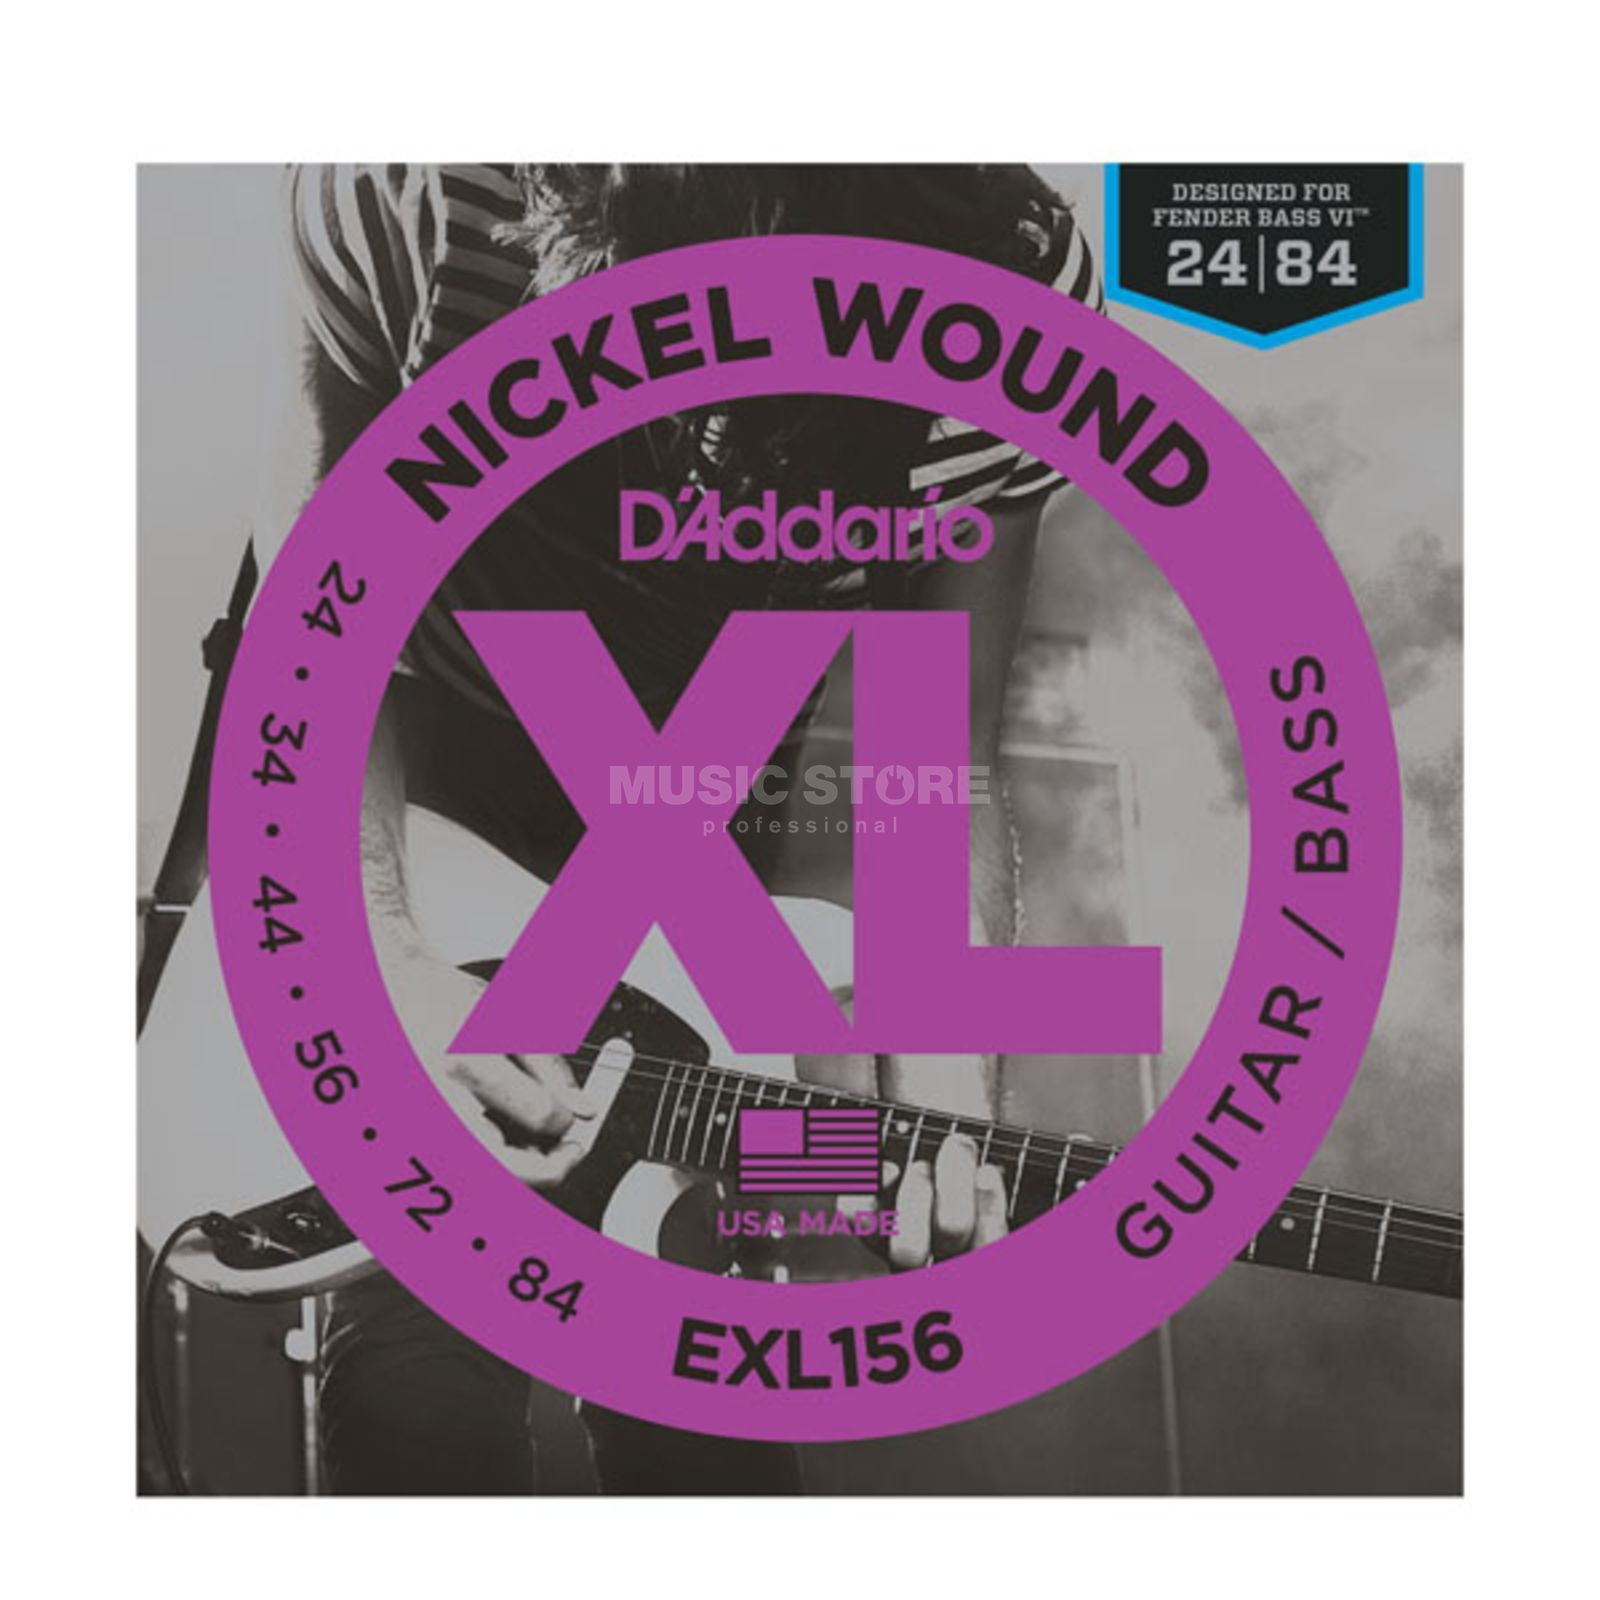 D'Addario E-Guit./Bass Strings XL156 24- 84,Nickel Wound,Fender Bass VI Produktbillede